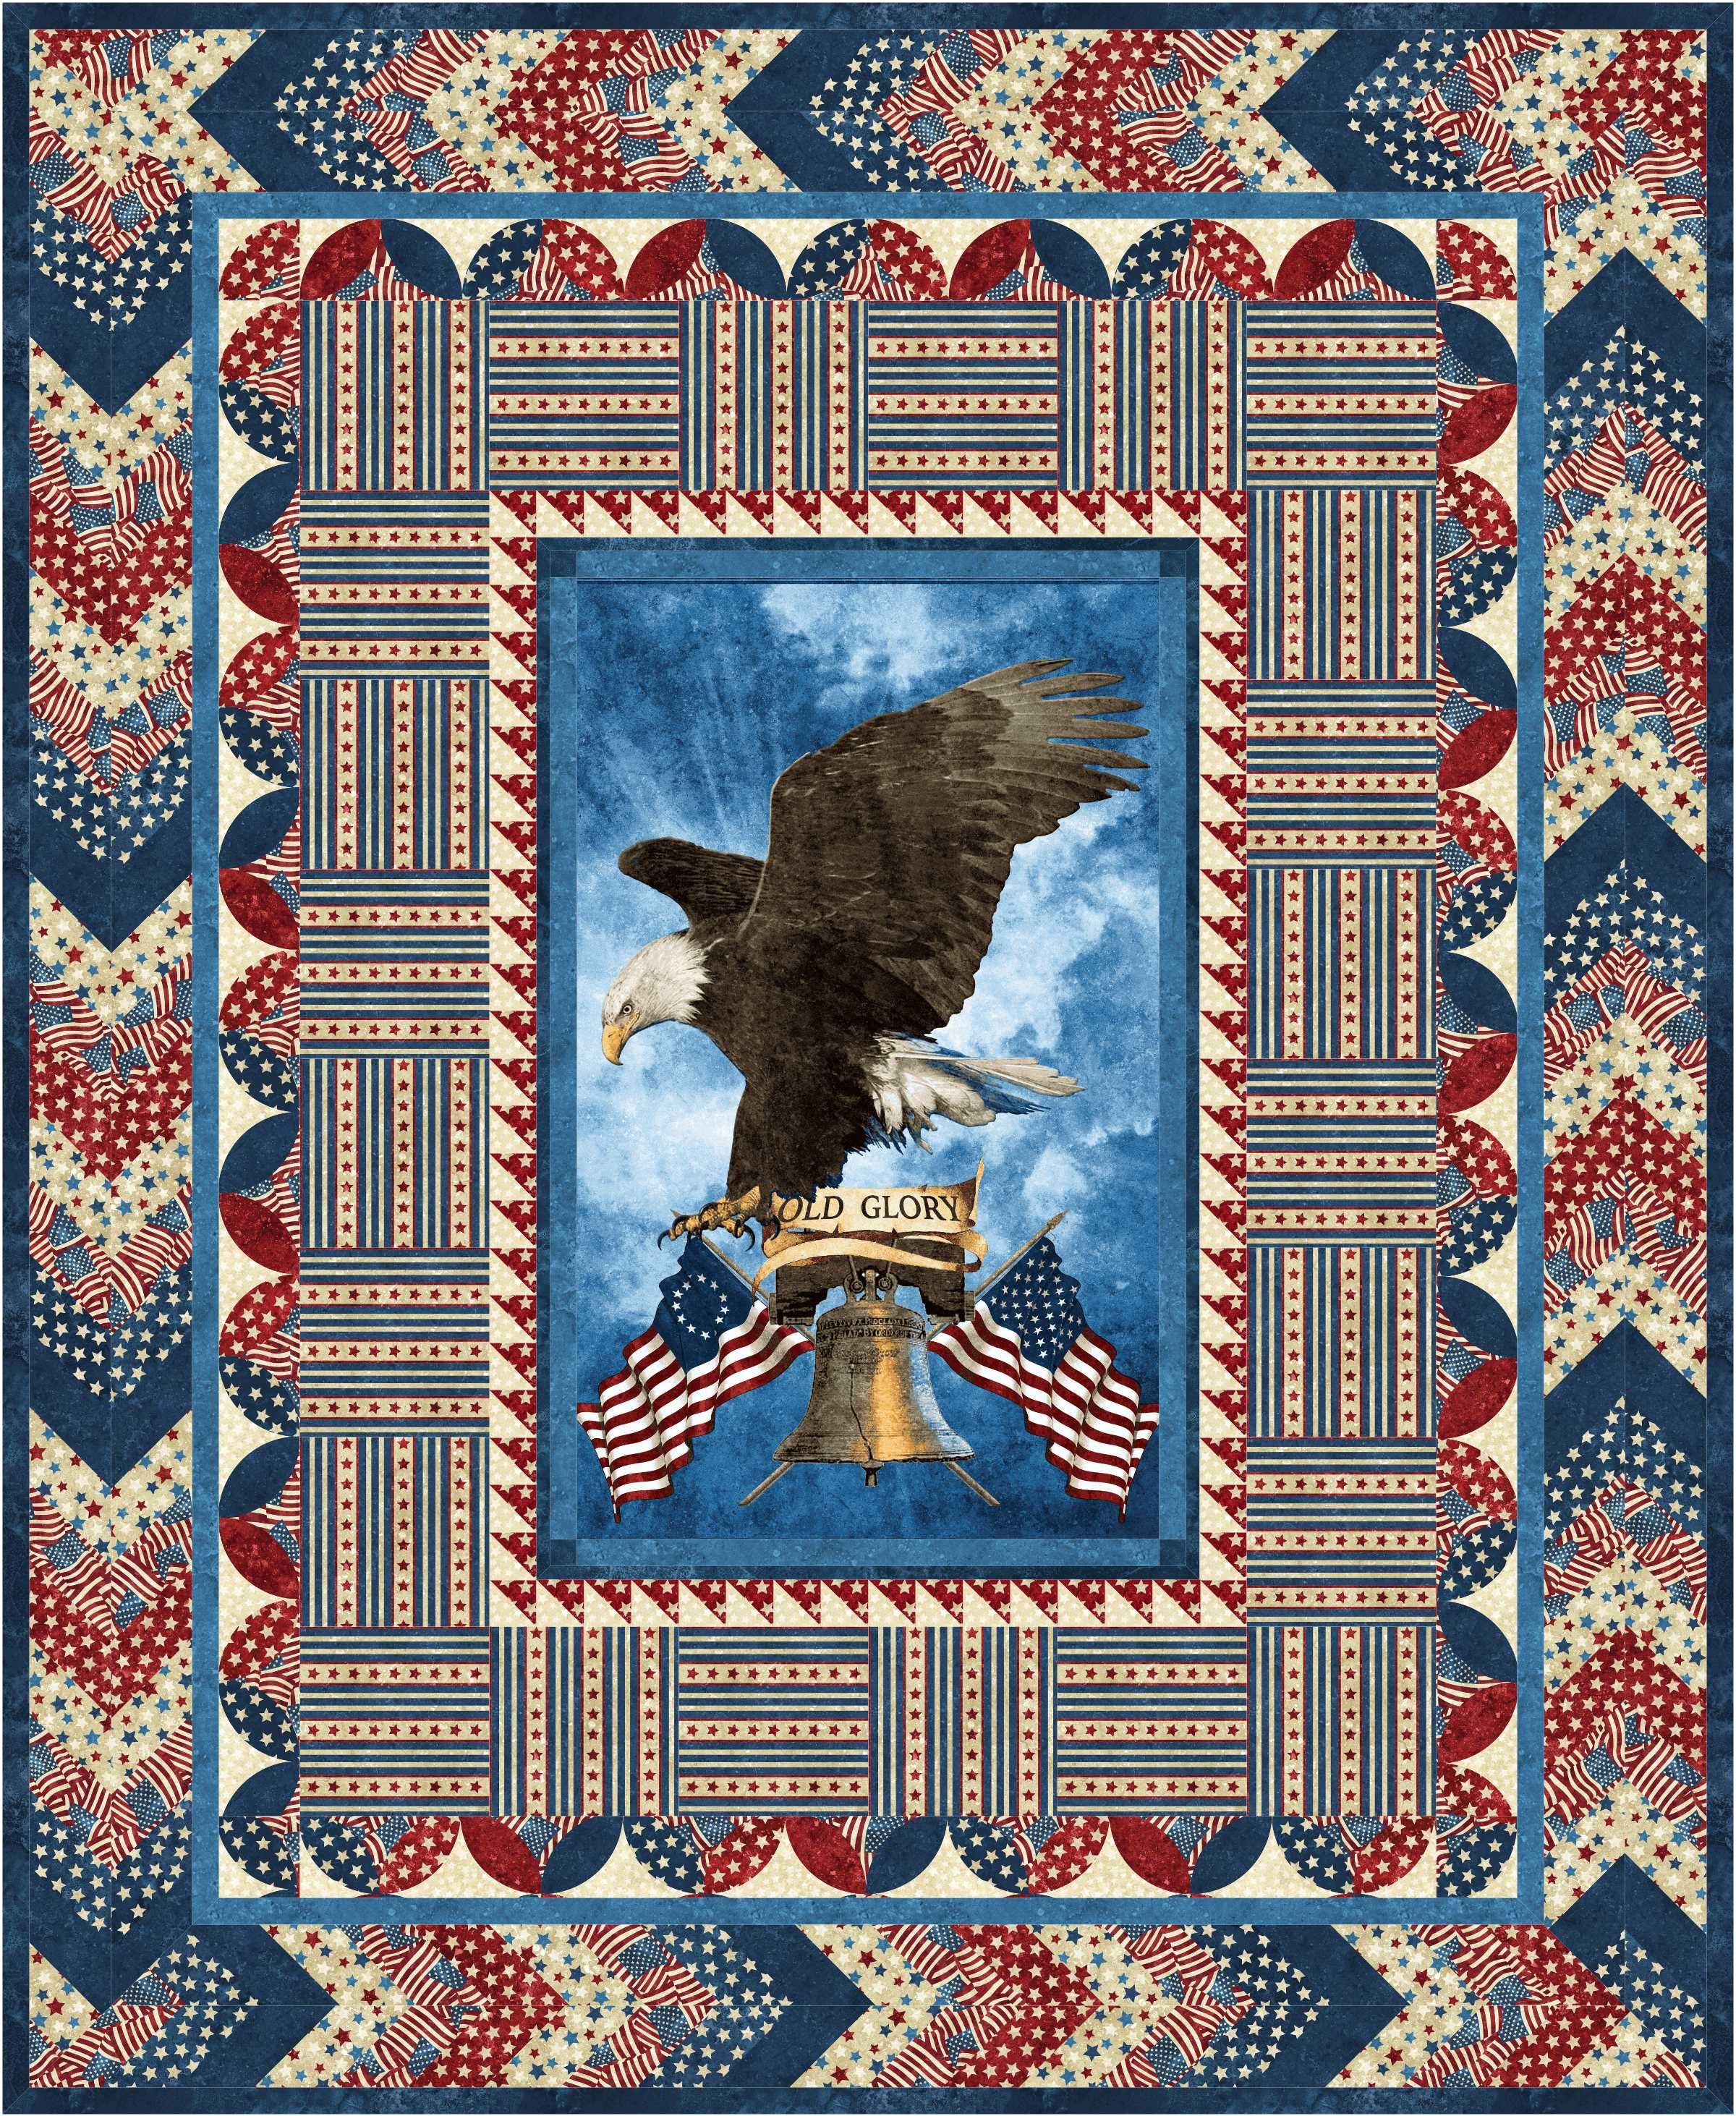 Quilting Panels Quilt Patterns : Old Glory One Stamp Quilt of Valor Pattern uses the Stonehenge